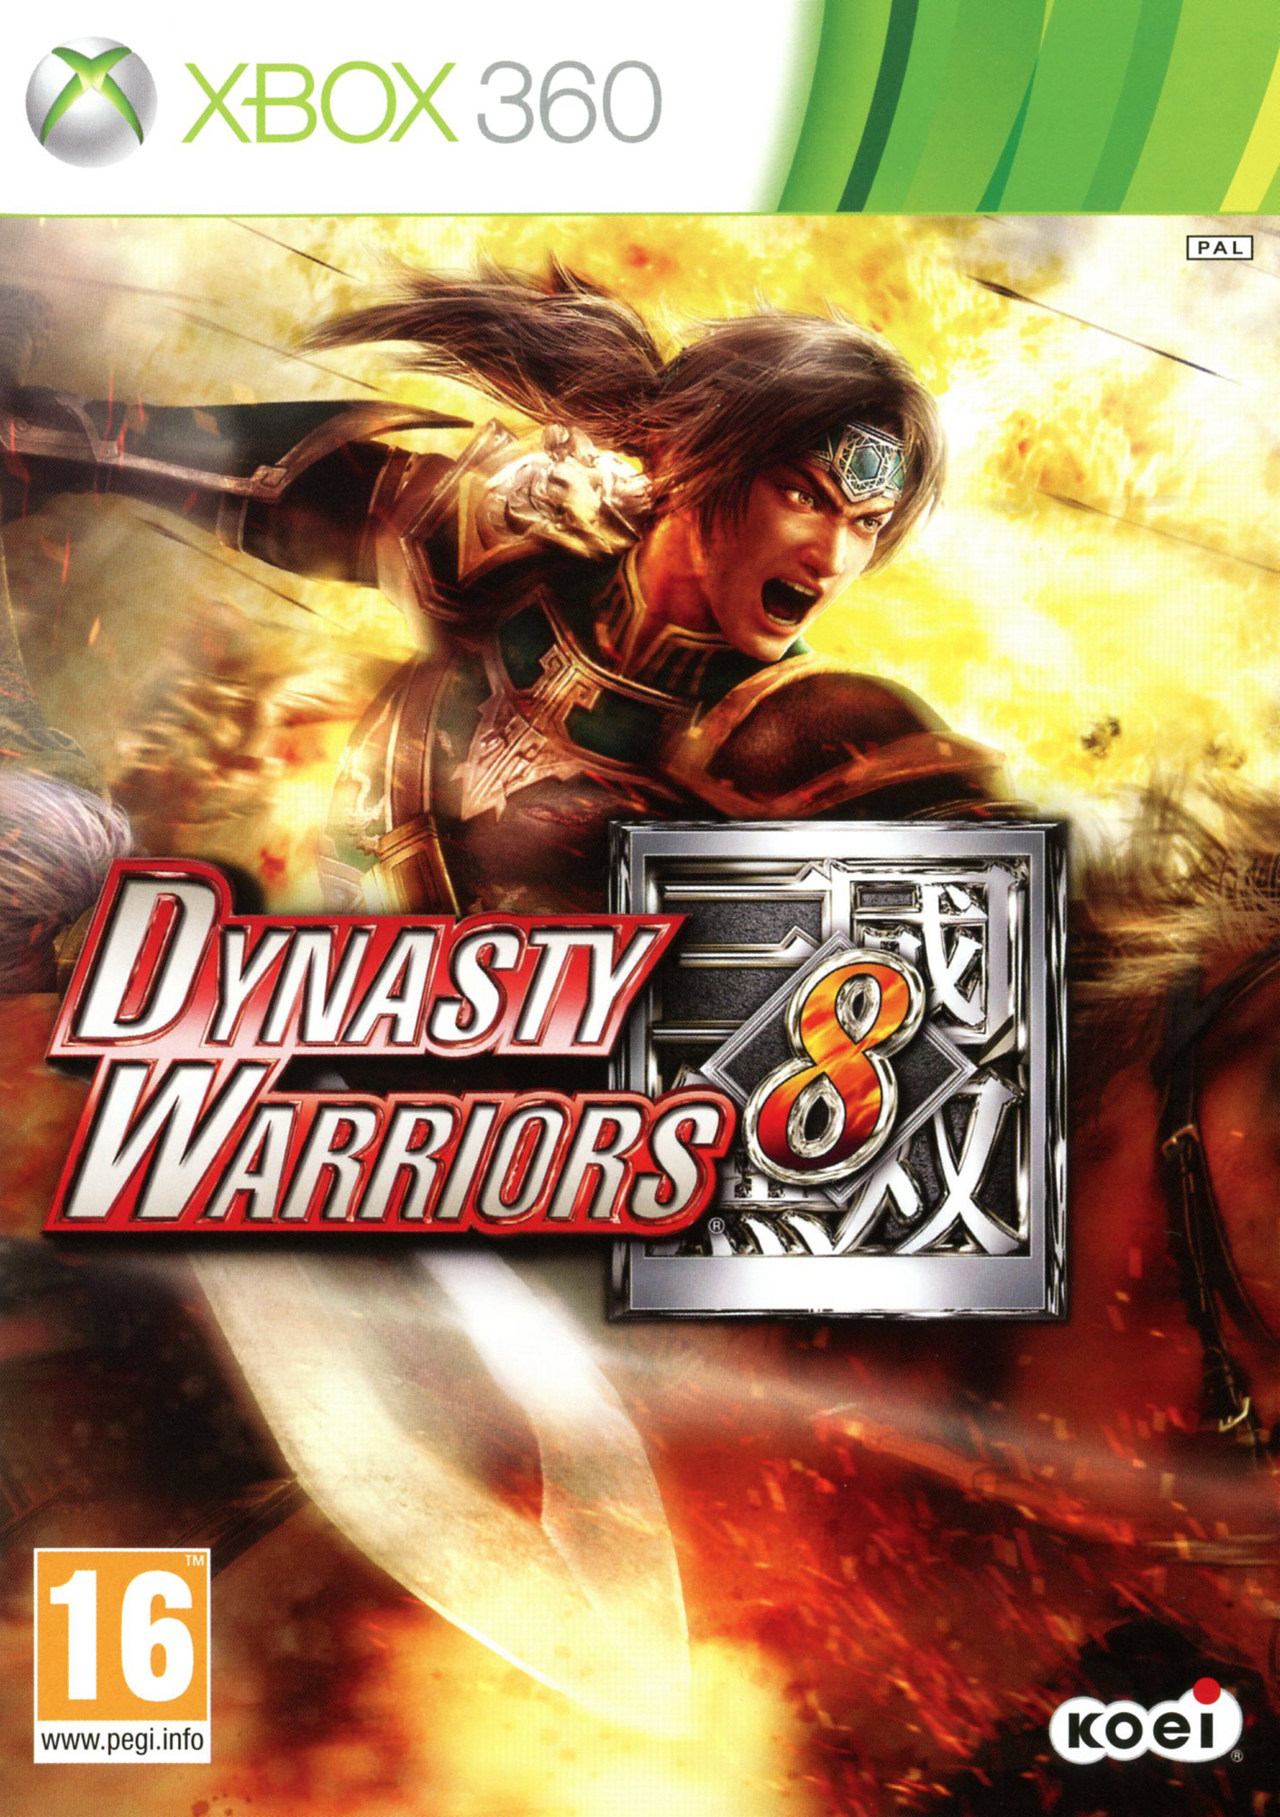 ~ [My-uP] ~ [ Dynasty Warriors 8 XboX 360 7.50 Gb ] ~ [My-uP] ~ Jaquette-dynasty-warriors-8-xbox-360-cover-avant-g-1374073875